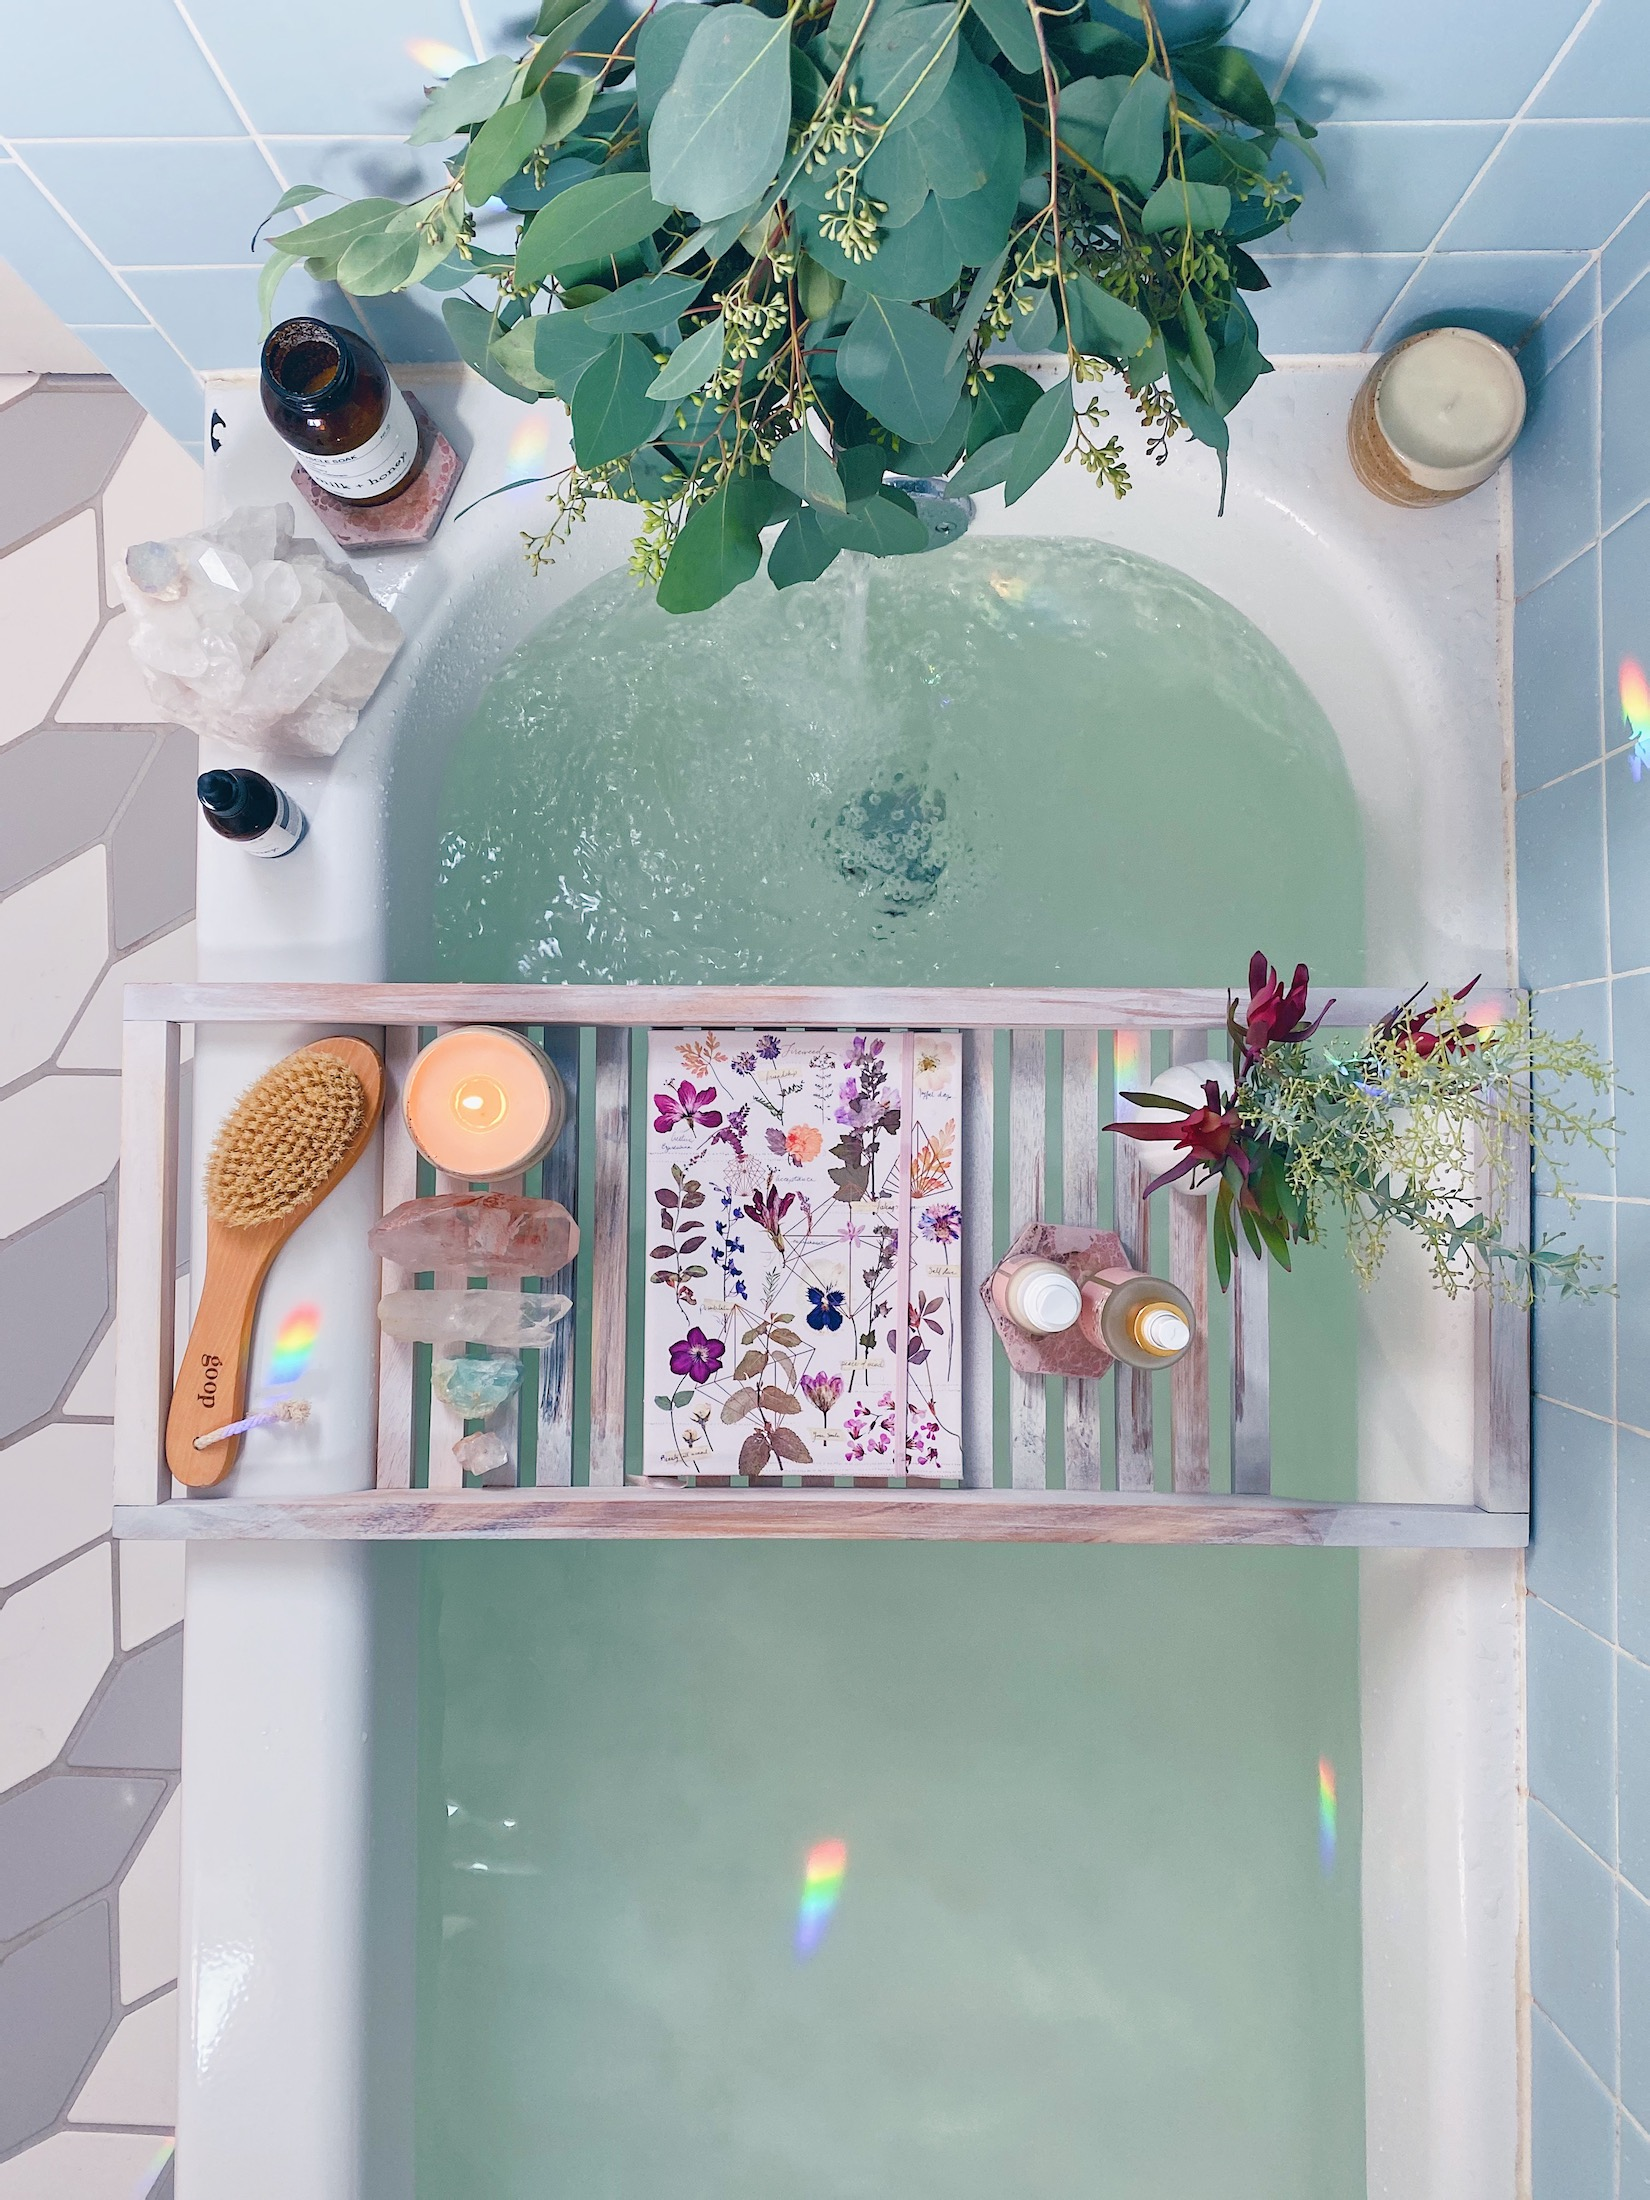 digital-detox-bath